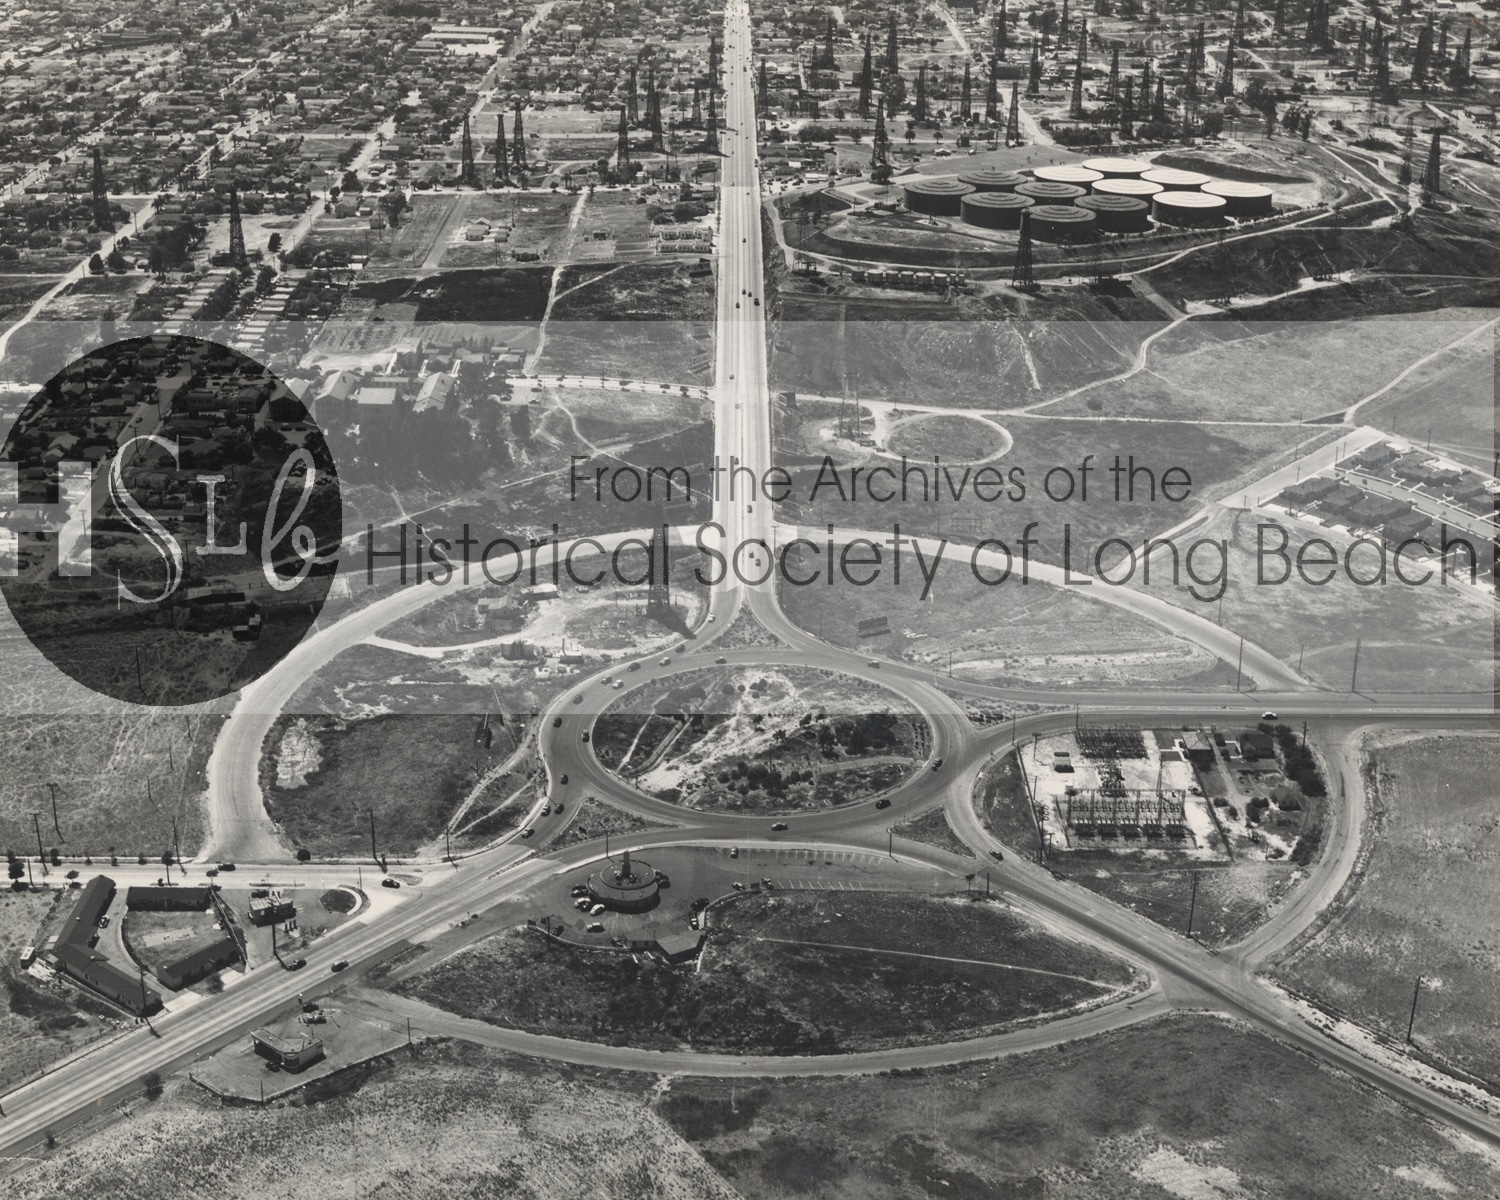 Arial photograph of long beach roads historical